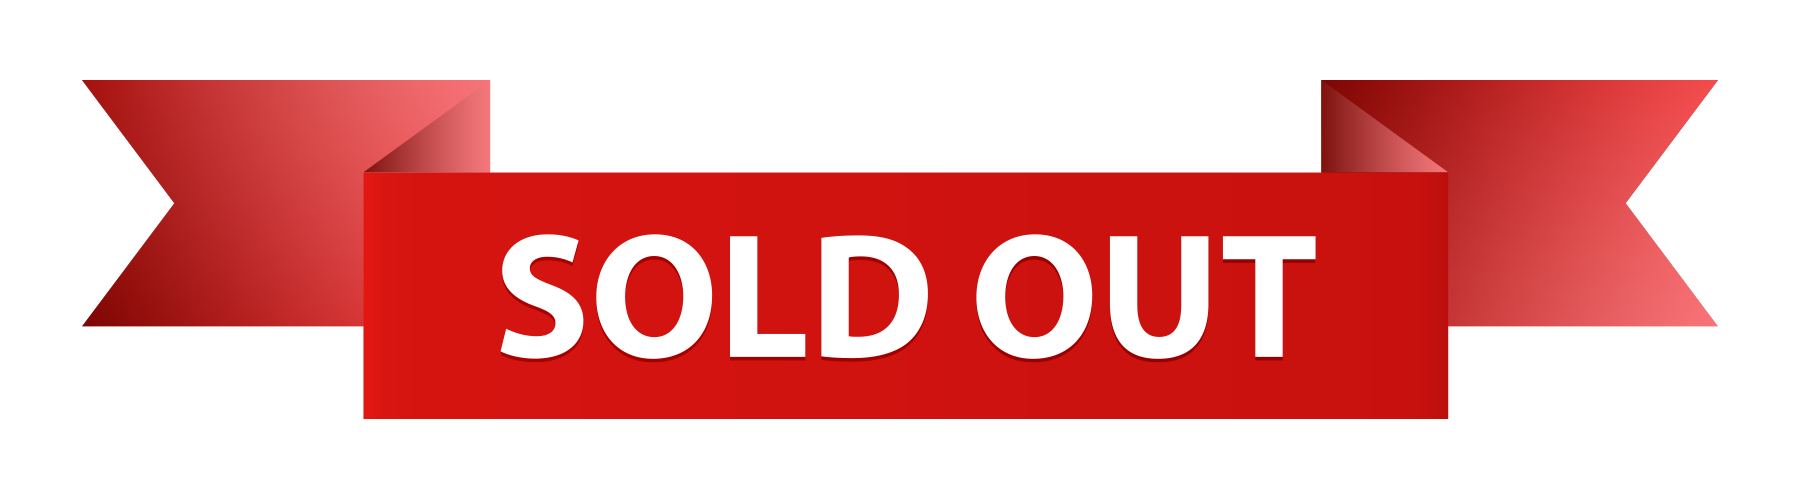 Murder at the Derby Sold Out